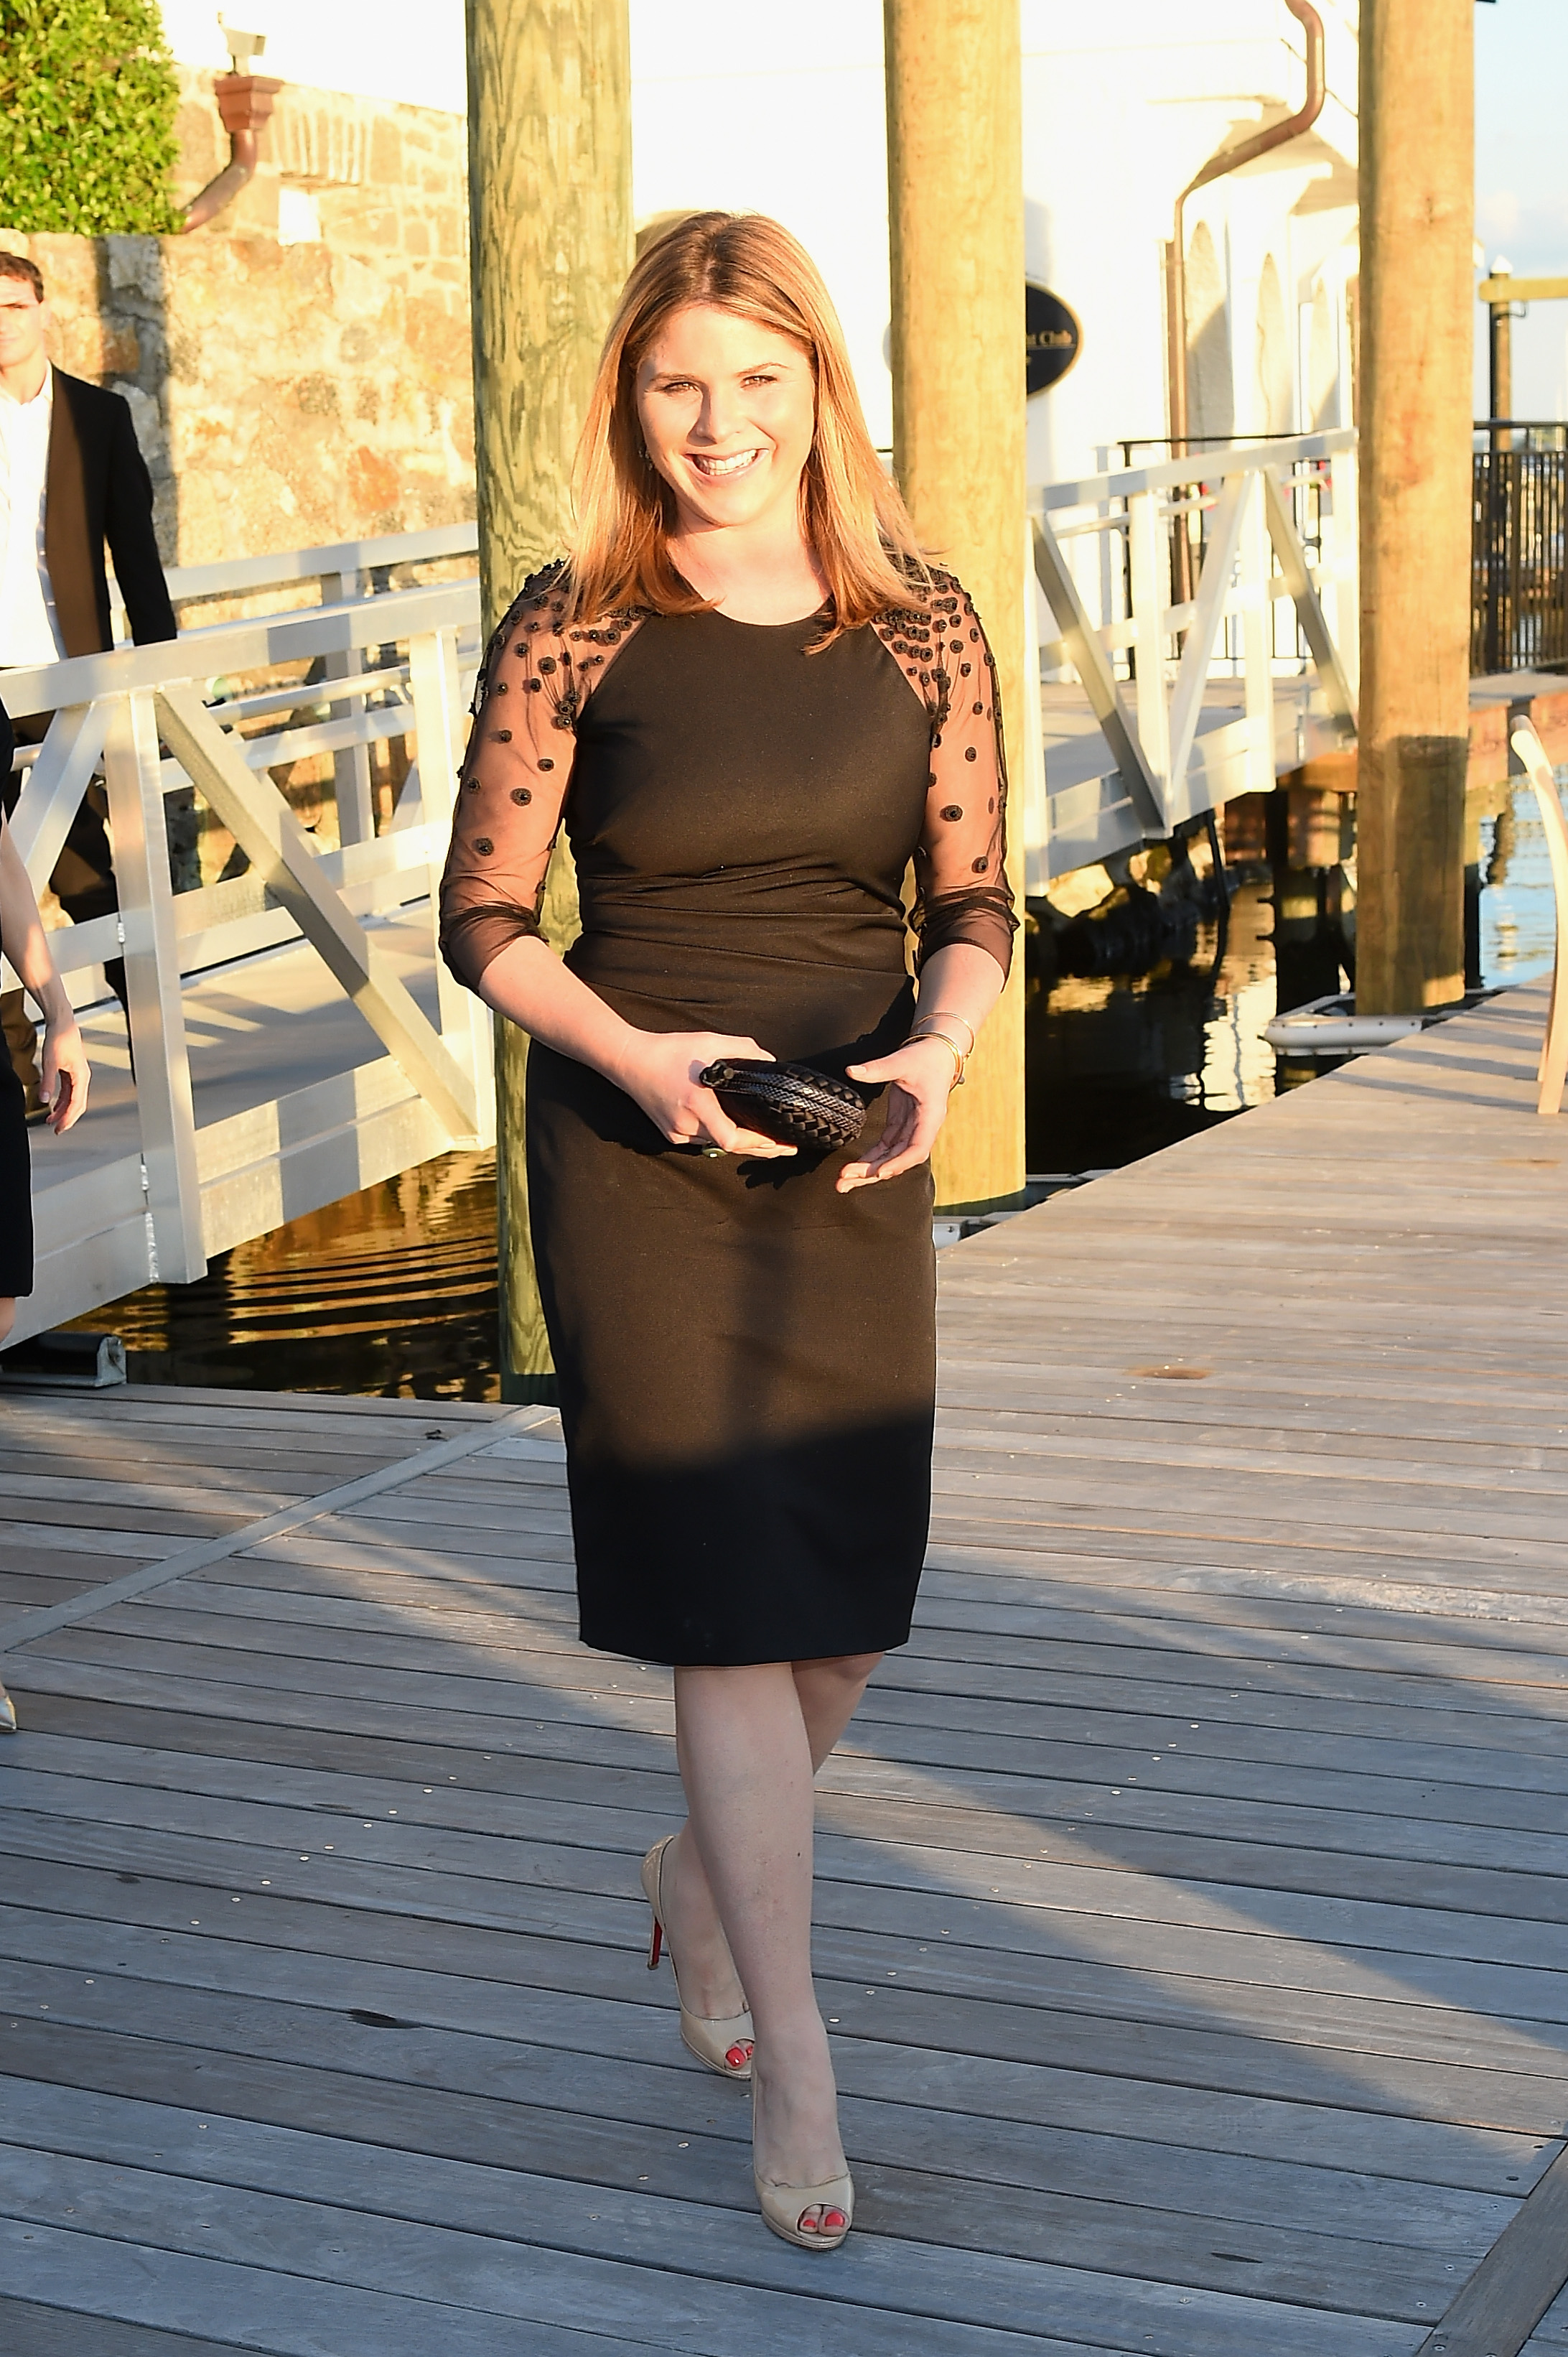 GREENWICH, CT - JUNE 01:  Jenna Bush Hager attends the Changemaker Boat Ride during the Greenwich International Film Festival, Day 1 on June 1, 2017 in Greenwich, Connecticut.  (Photo by Ben Gabbe/Getty Images for Greenwich International Film Festival)